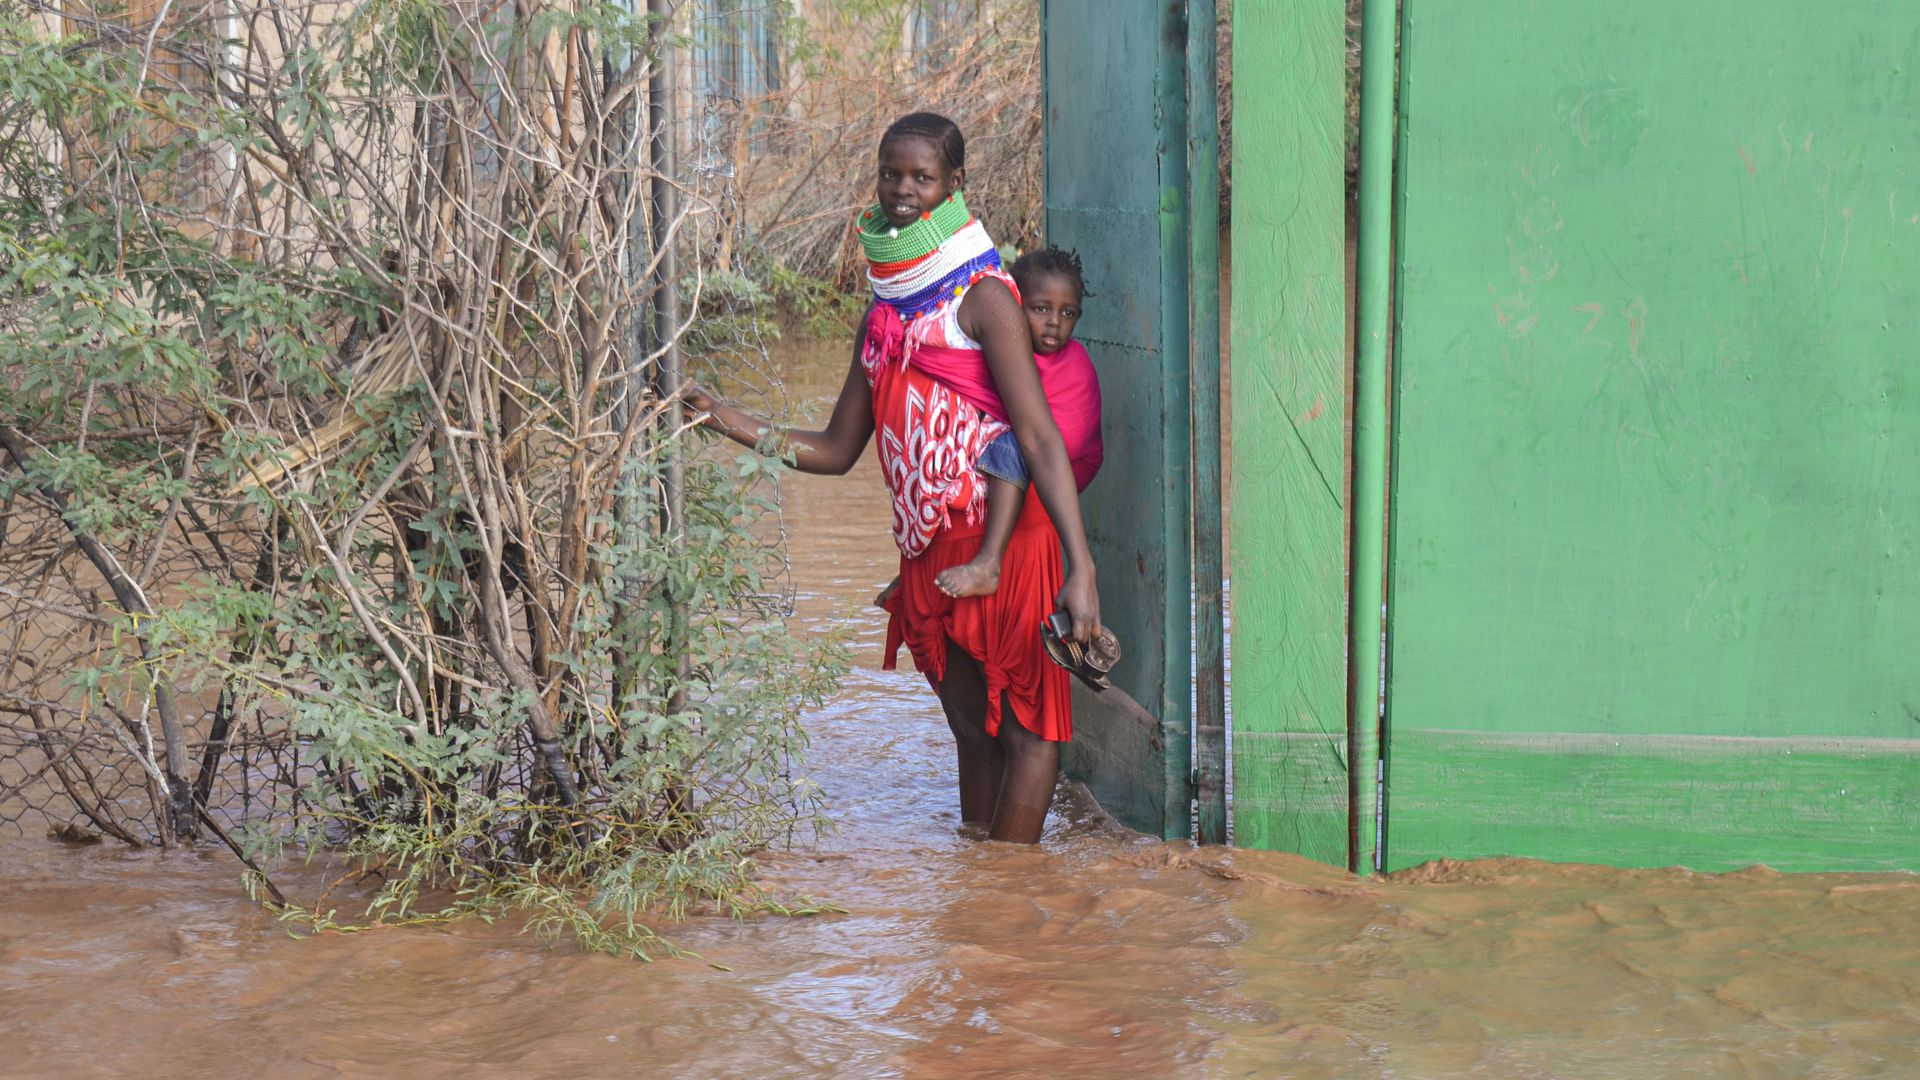 A Turkana woman stops at a gate of her house that is submerged by flooded water after heavy rain in Lodwar, northwestern Kenya on October 18, 2019. (Photo by - / AFP) (Photo by -/AFP via Getty Images)